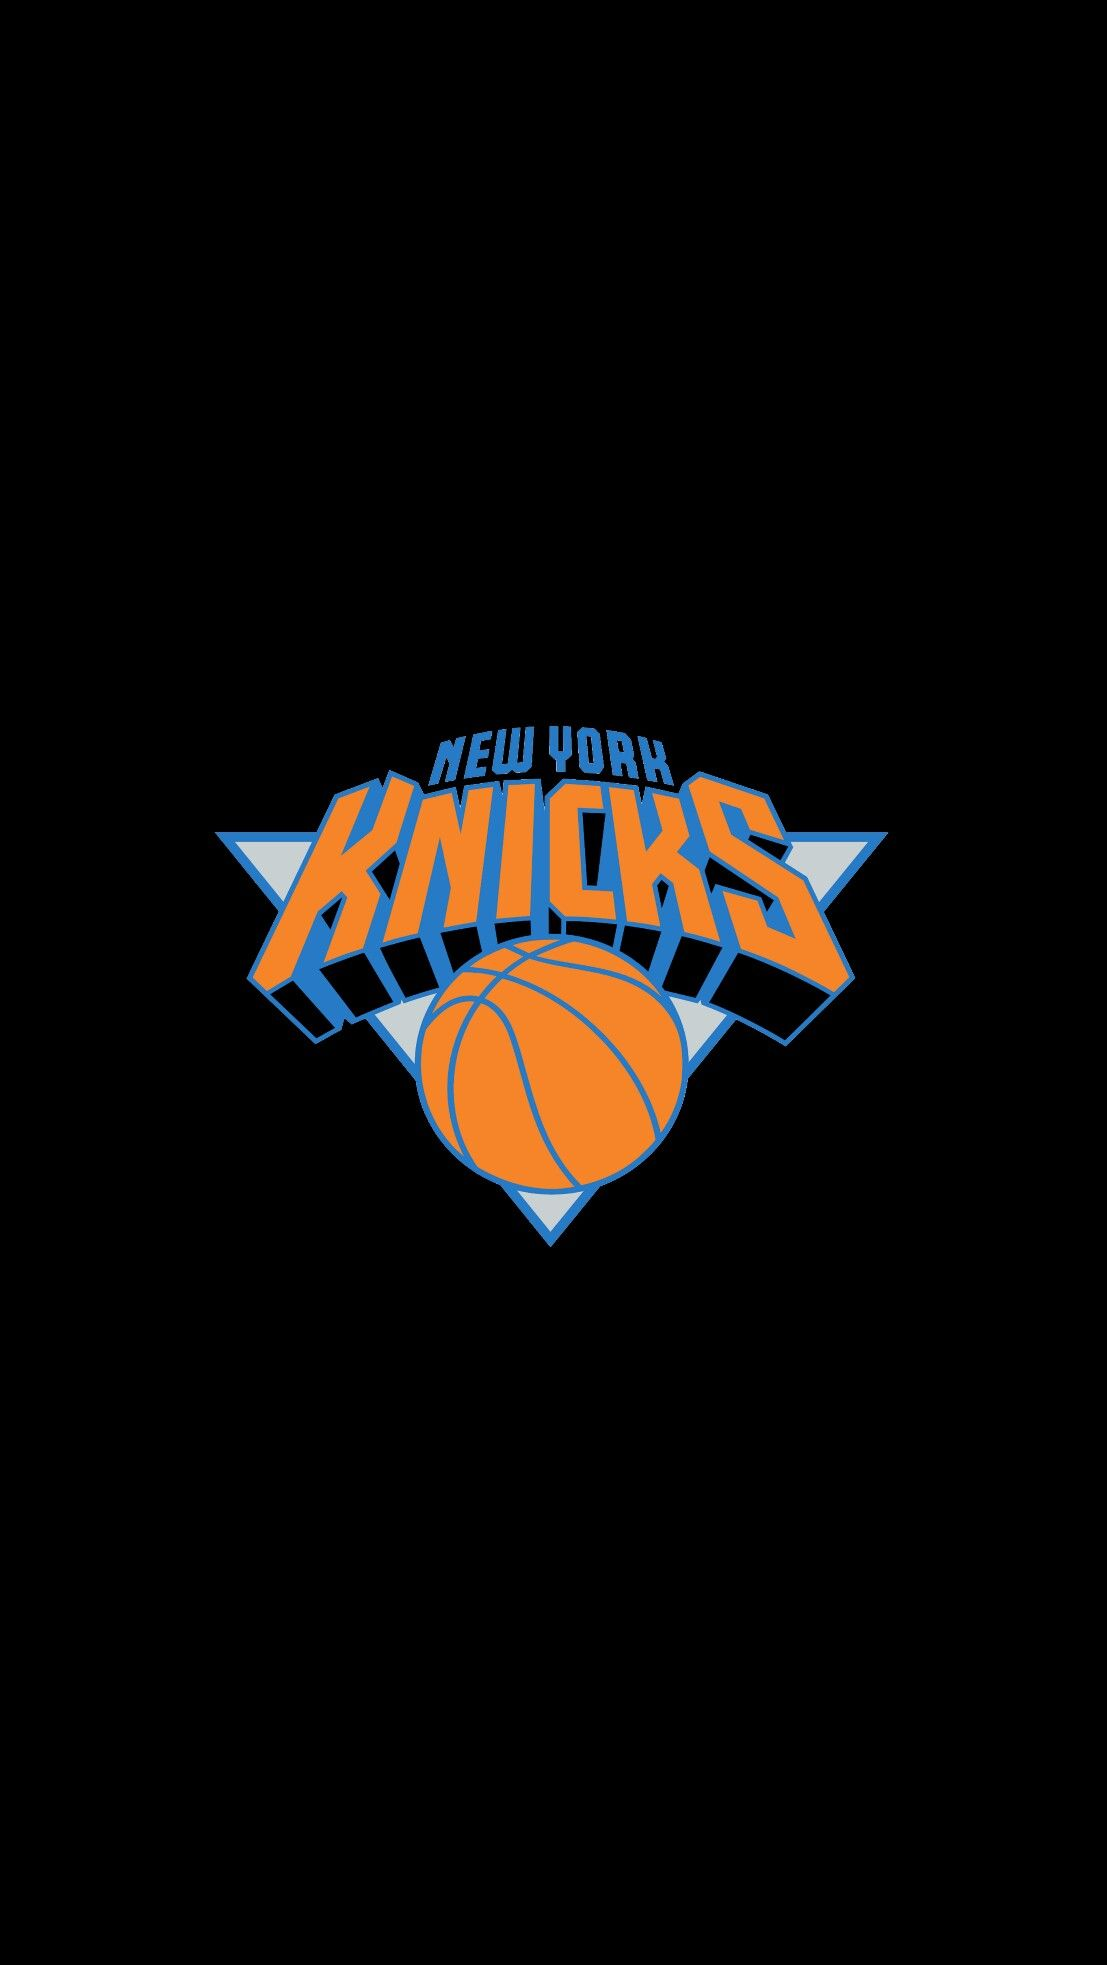 Nba Wallpaper Iphone Android New York Knicks Logo Lakers